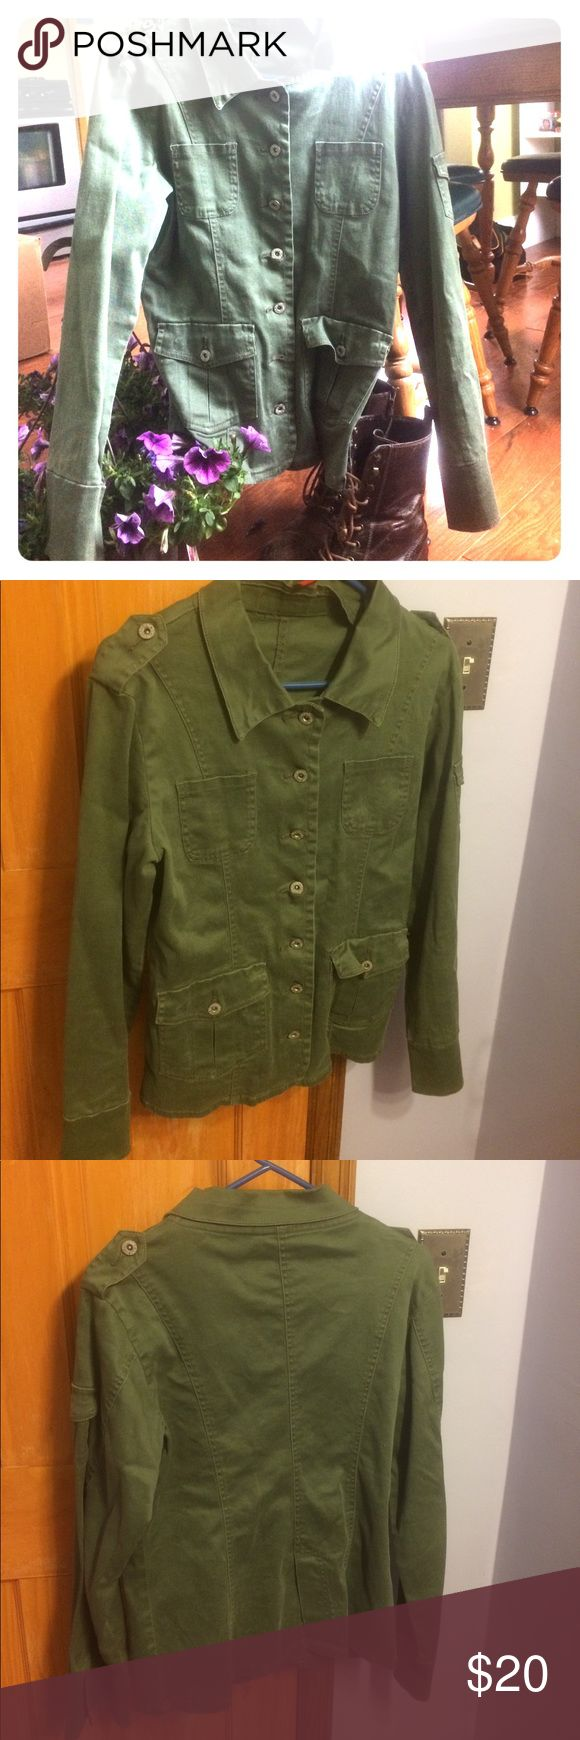 Green Military Jacket Back to basics with this classic military cut. Very cute, little wear shown aside from manufactured wear look. Mark where a pin used to be on sleeve pocket. Says a size large but definitely fits a medium more than a large Vanilla Star Jackets & Coats Trench Coats